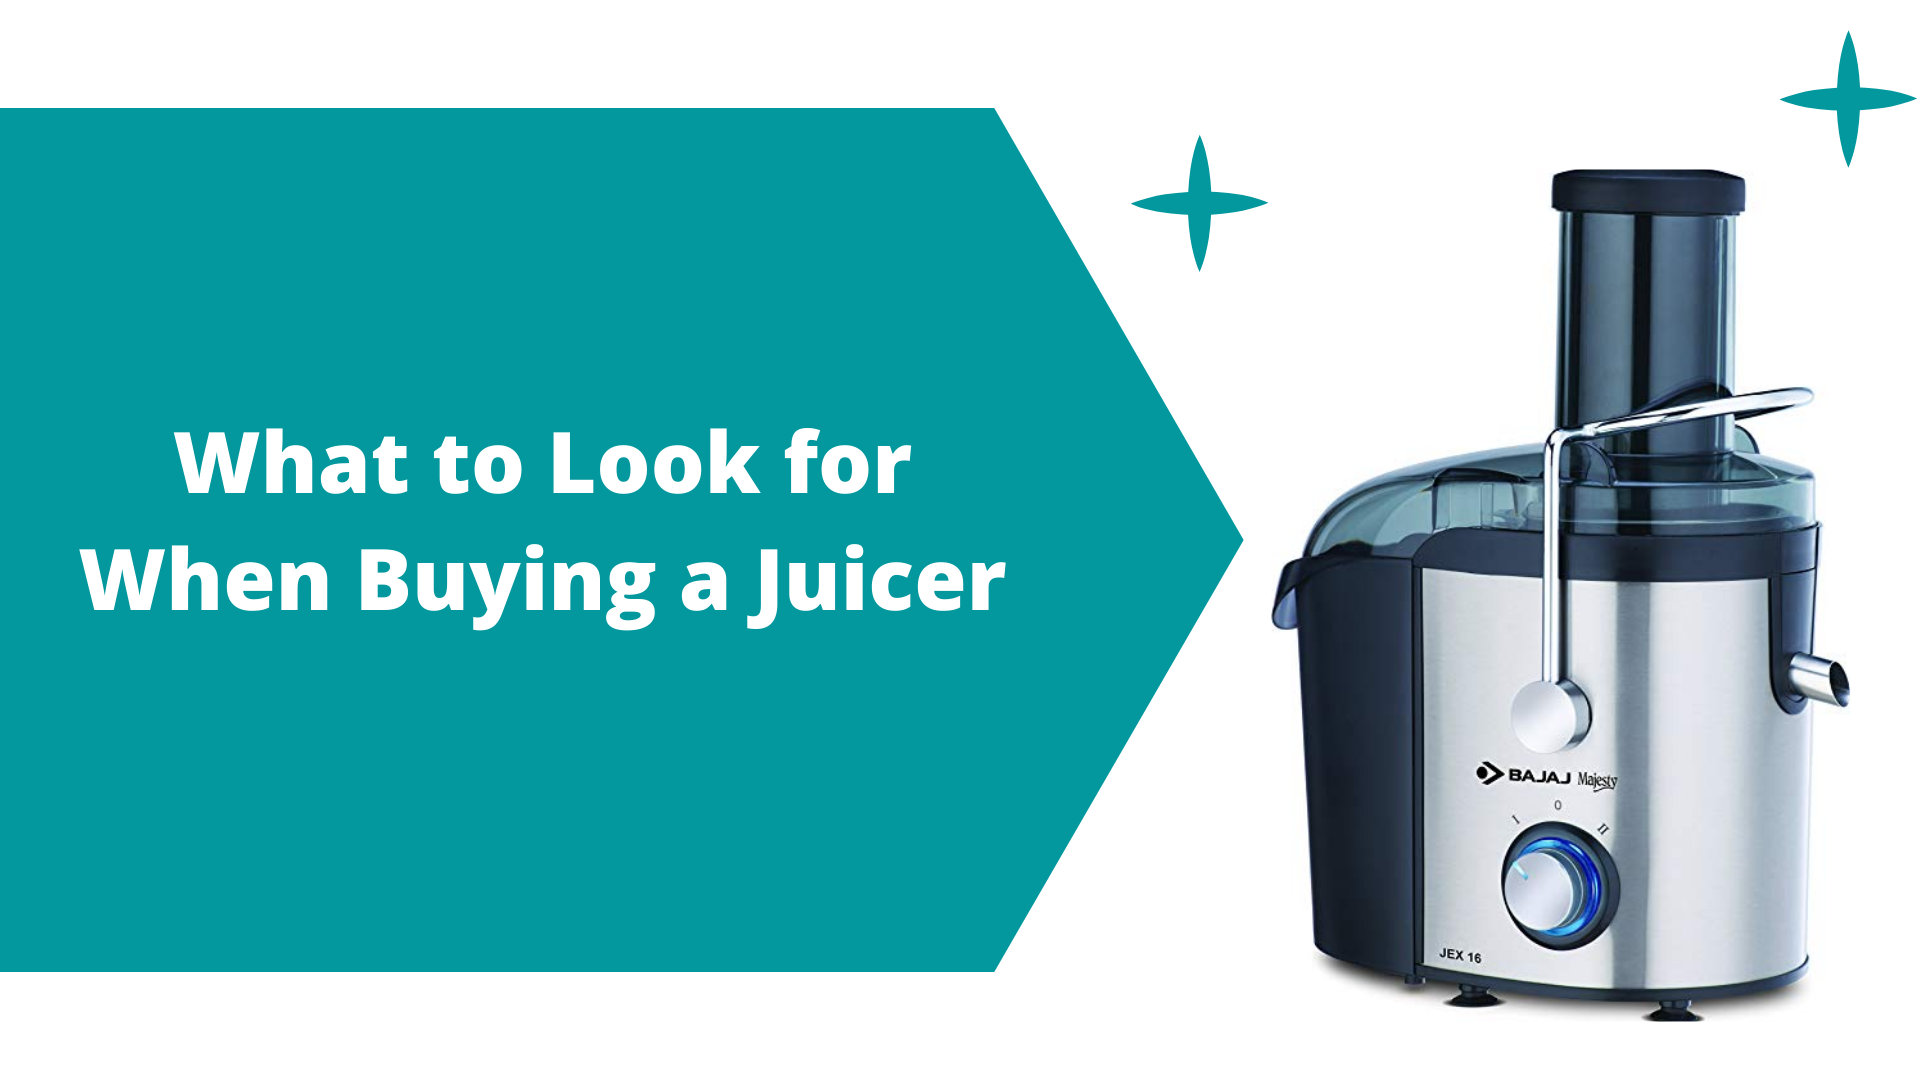 What to Look for When Buying a Juicer